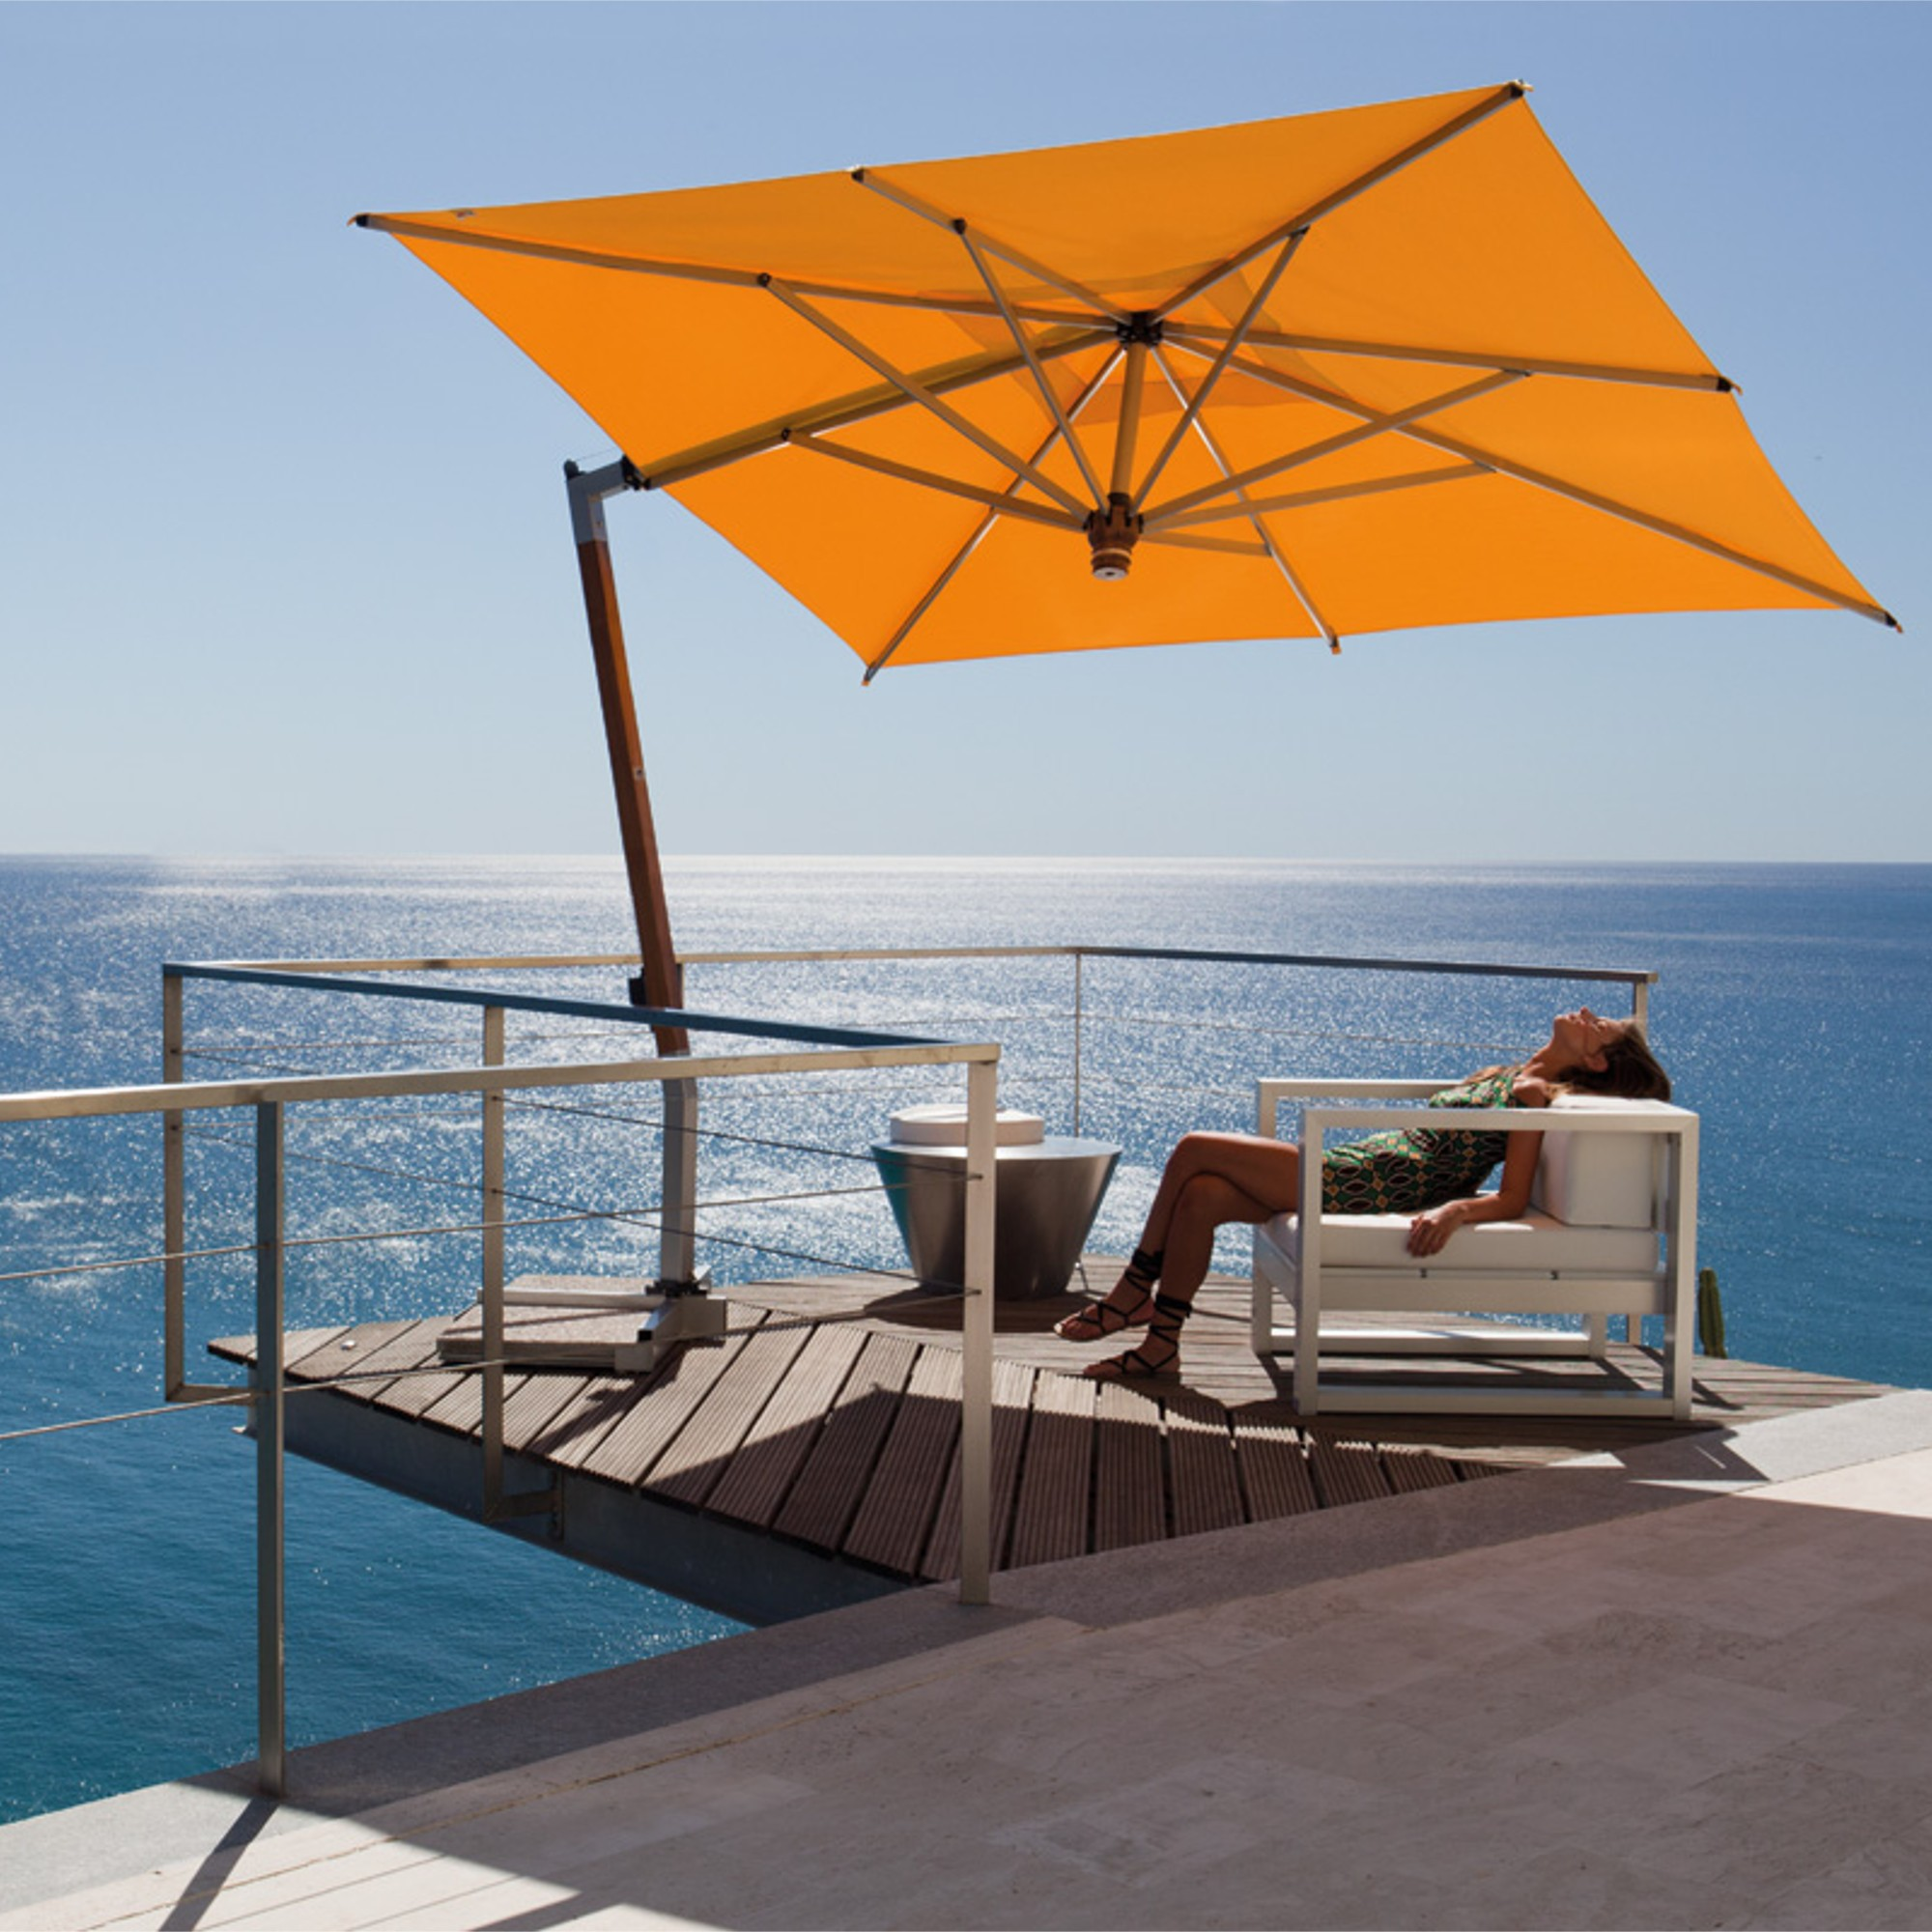 A woman sits back in a chair on her patio under a yellow Cantilever Umbrella overlooking the ocean.